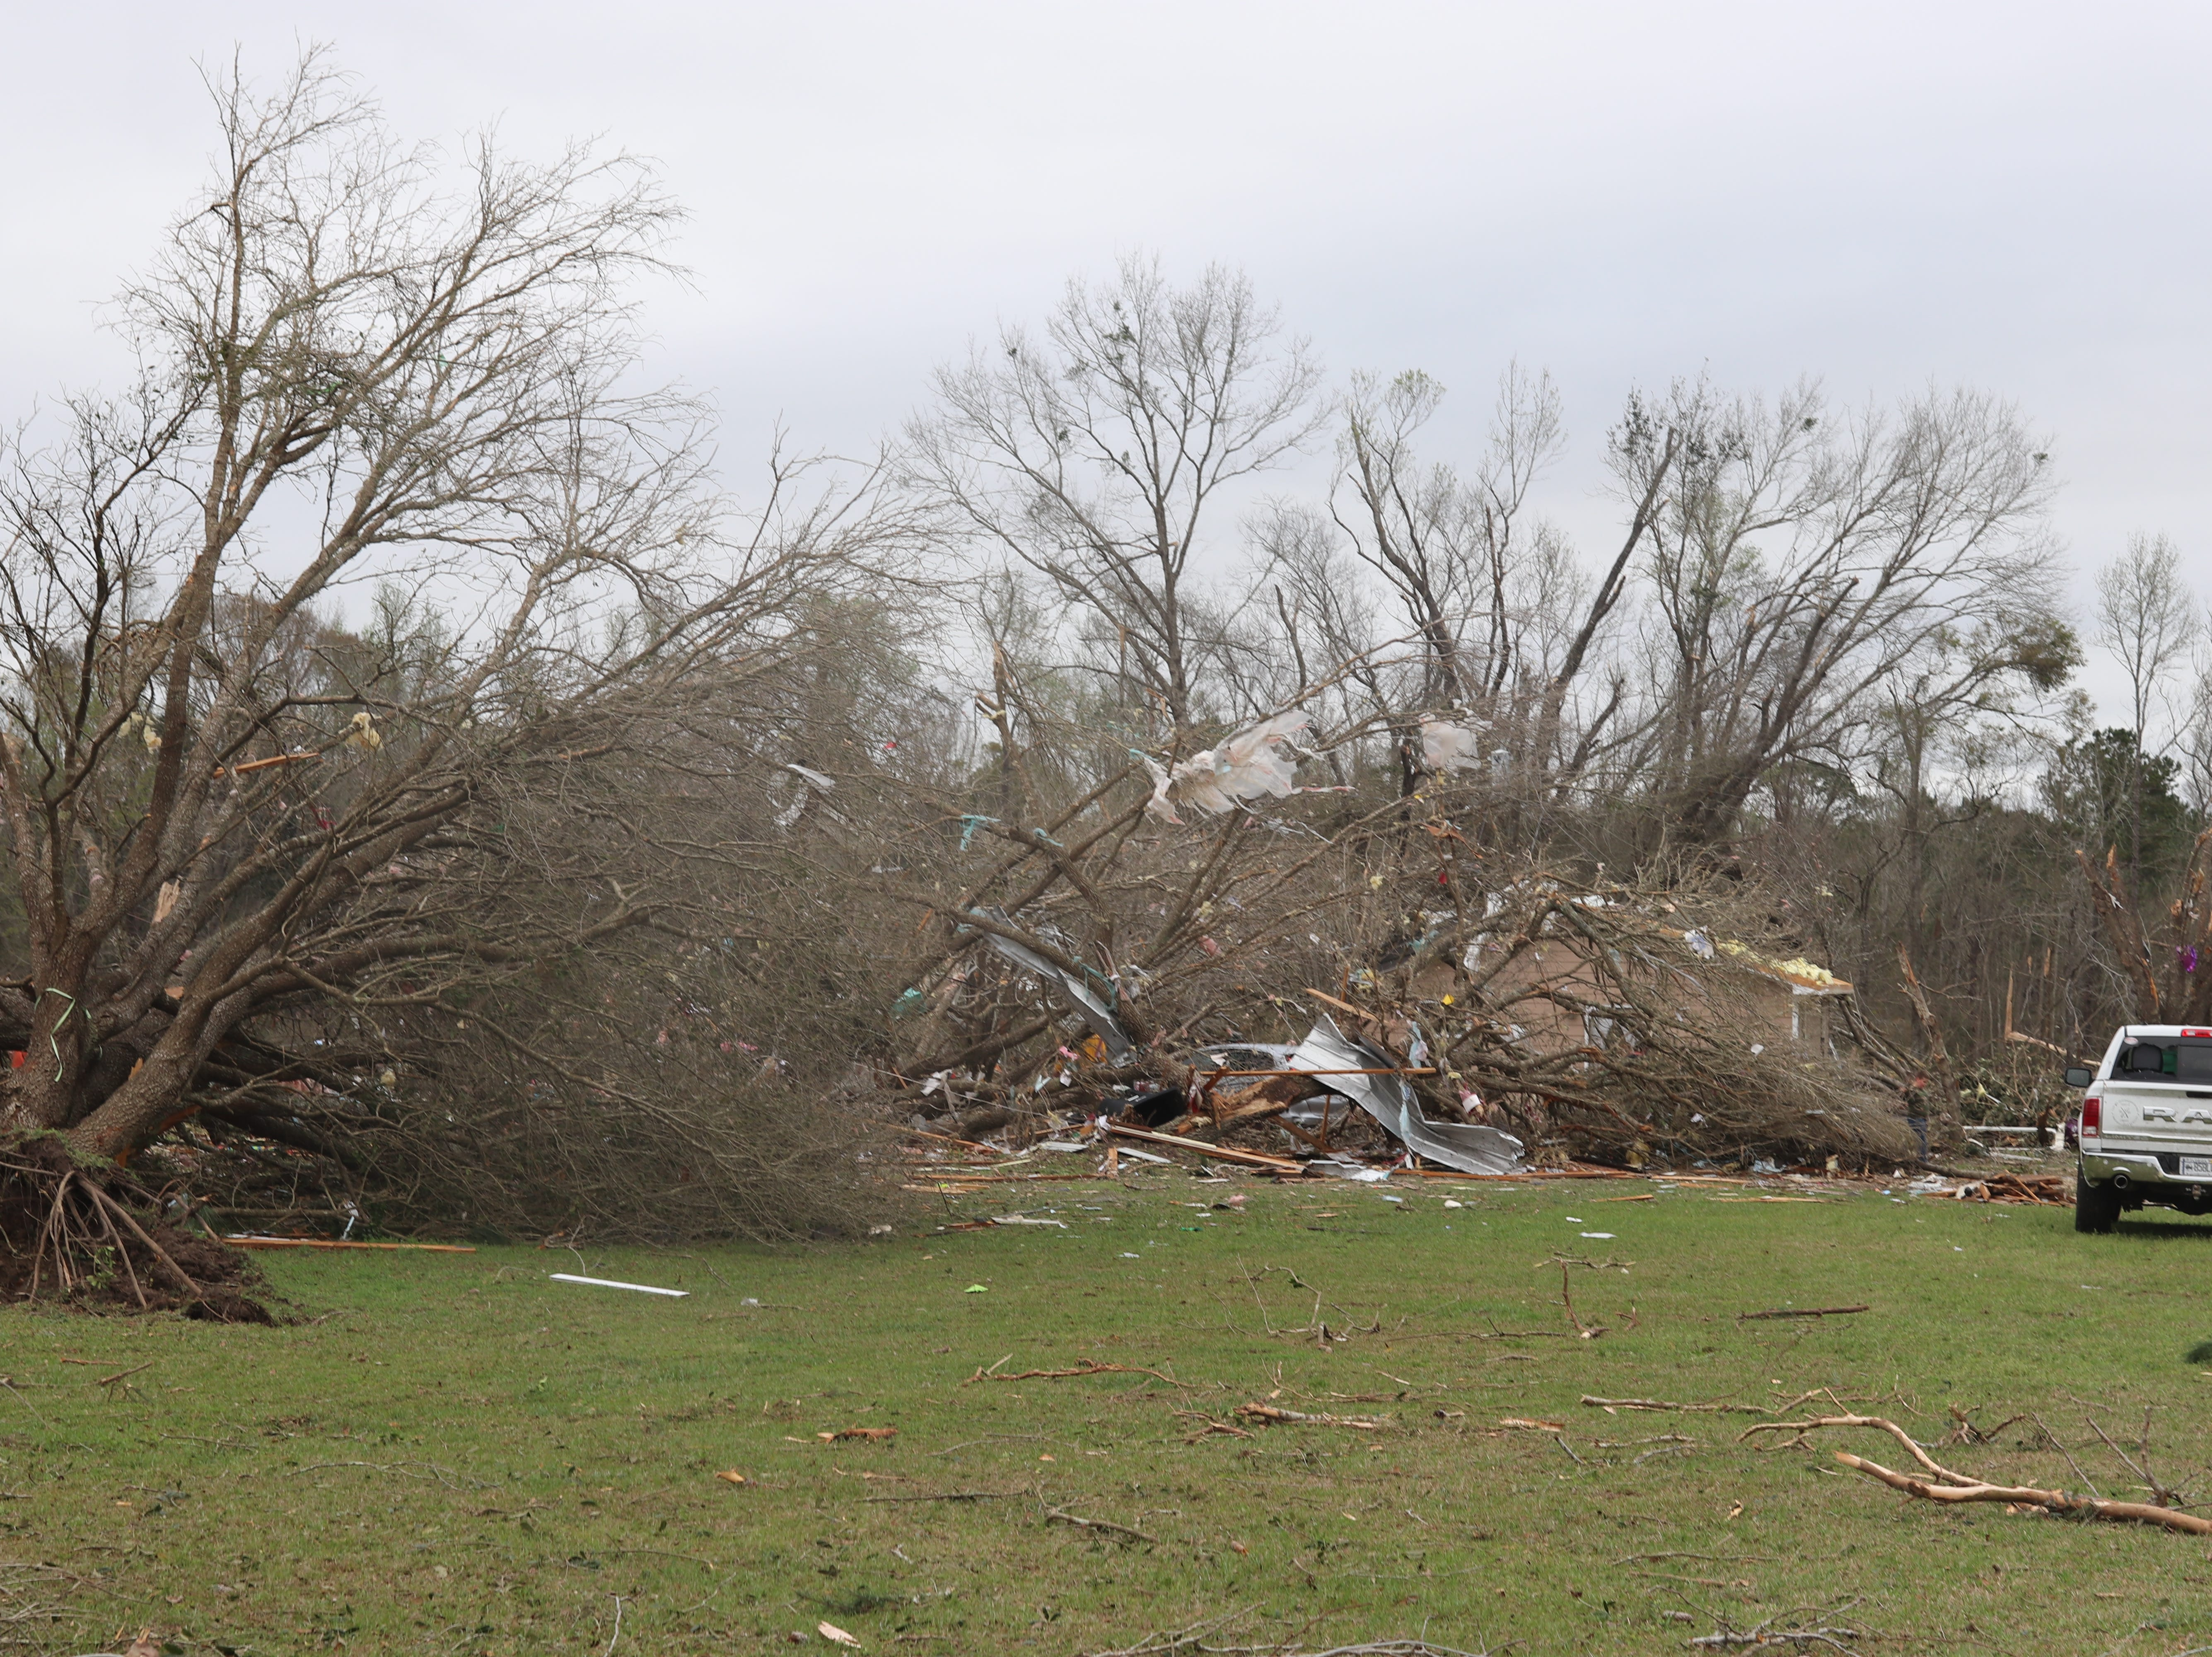 Debris scattered across the yard of David and Kathy Byler in the Baum Community after a tornado touched down Sunday March 3.